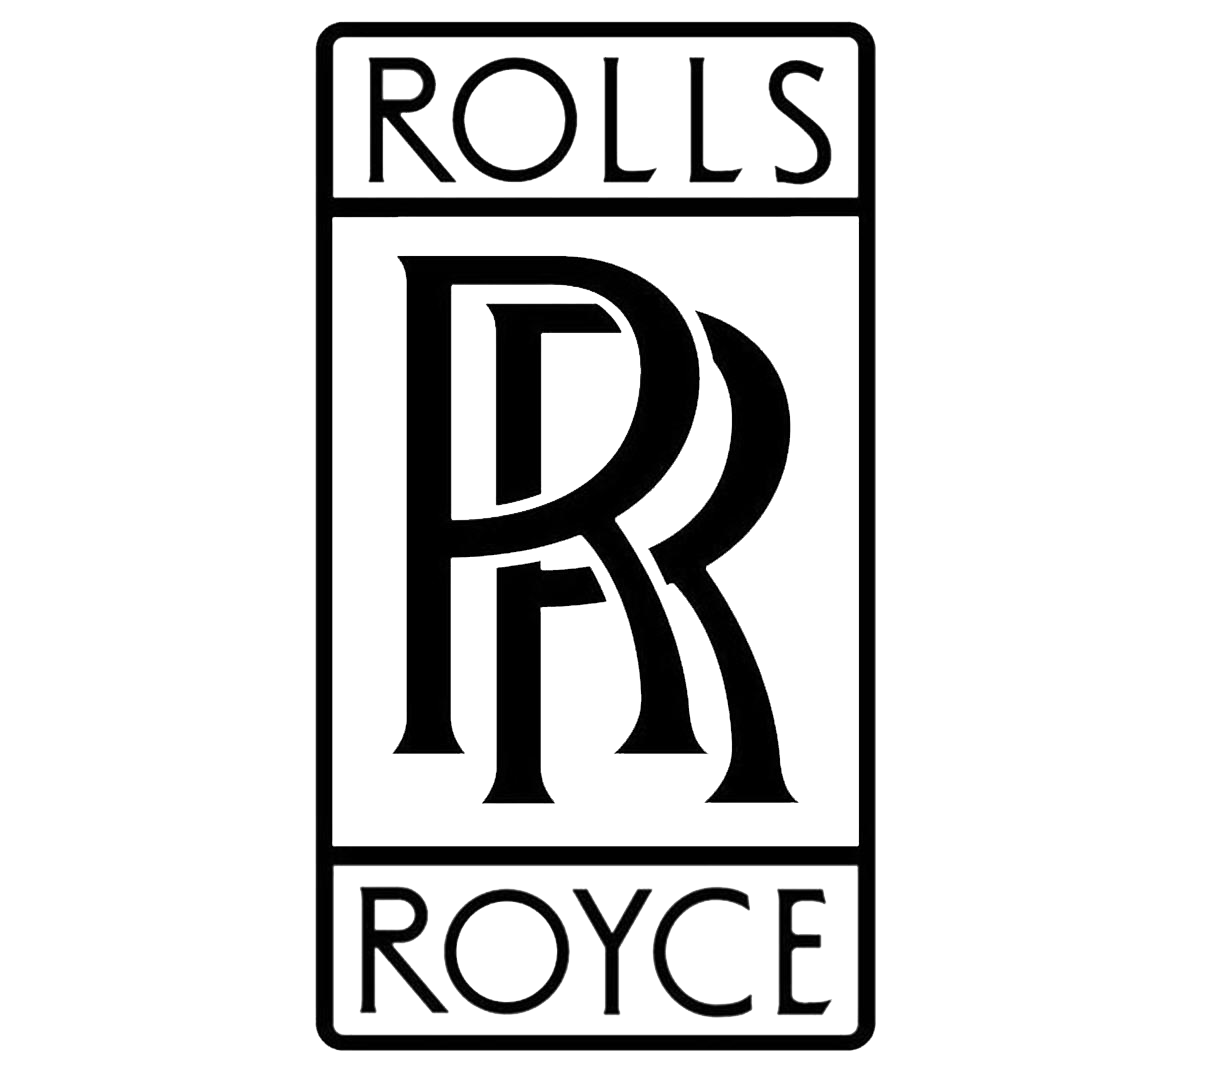 Rolls royce logo clipart clip art free stock Rolls Royce Car Logo PNG Image - PurePNG | Free transparent ... clip art free stock